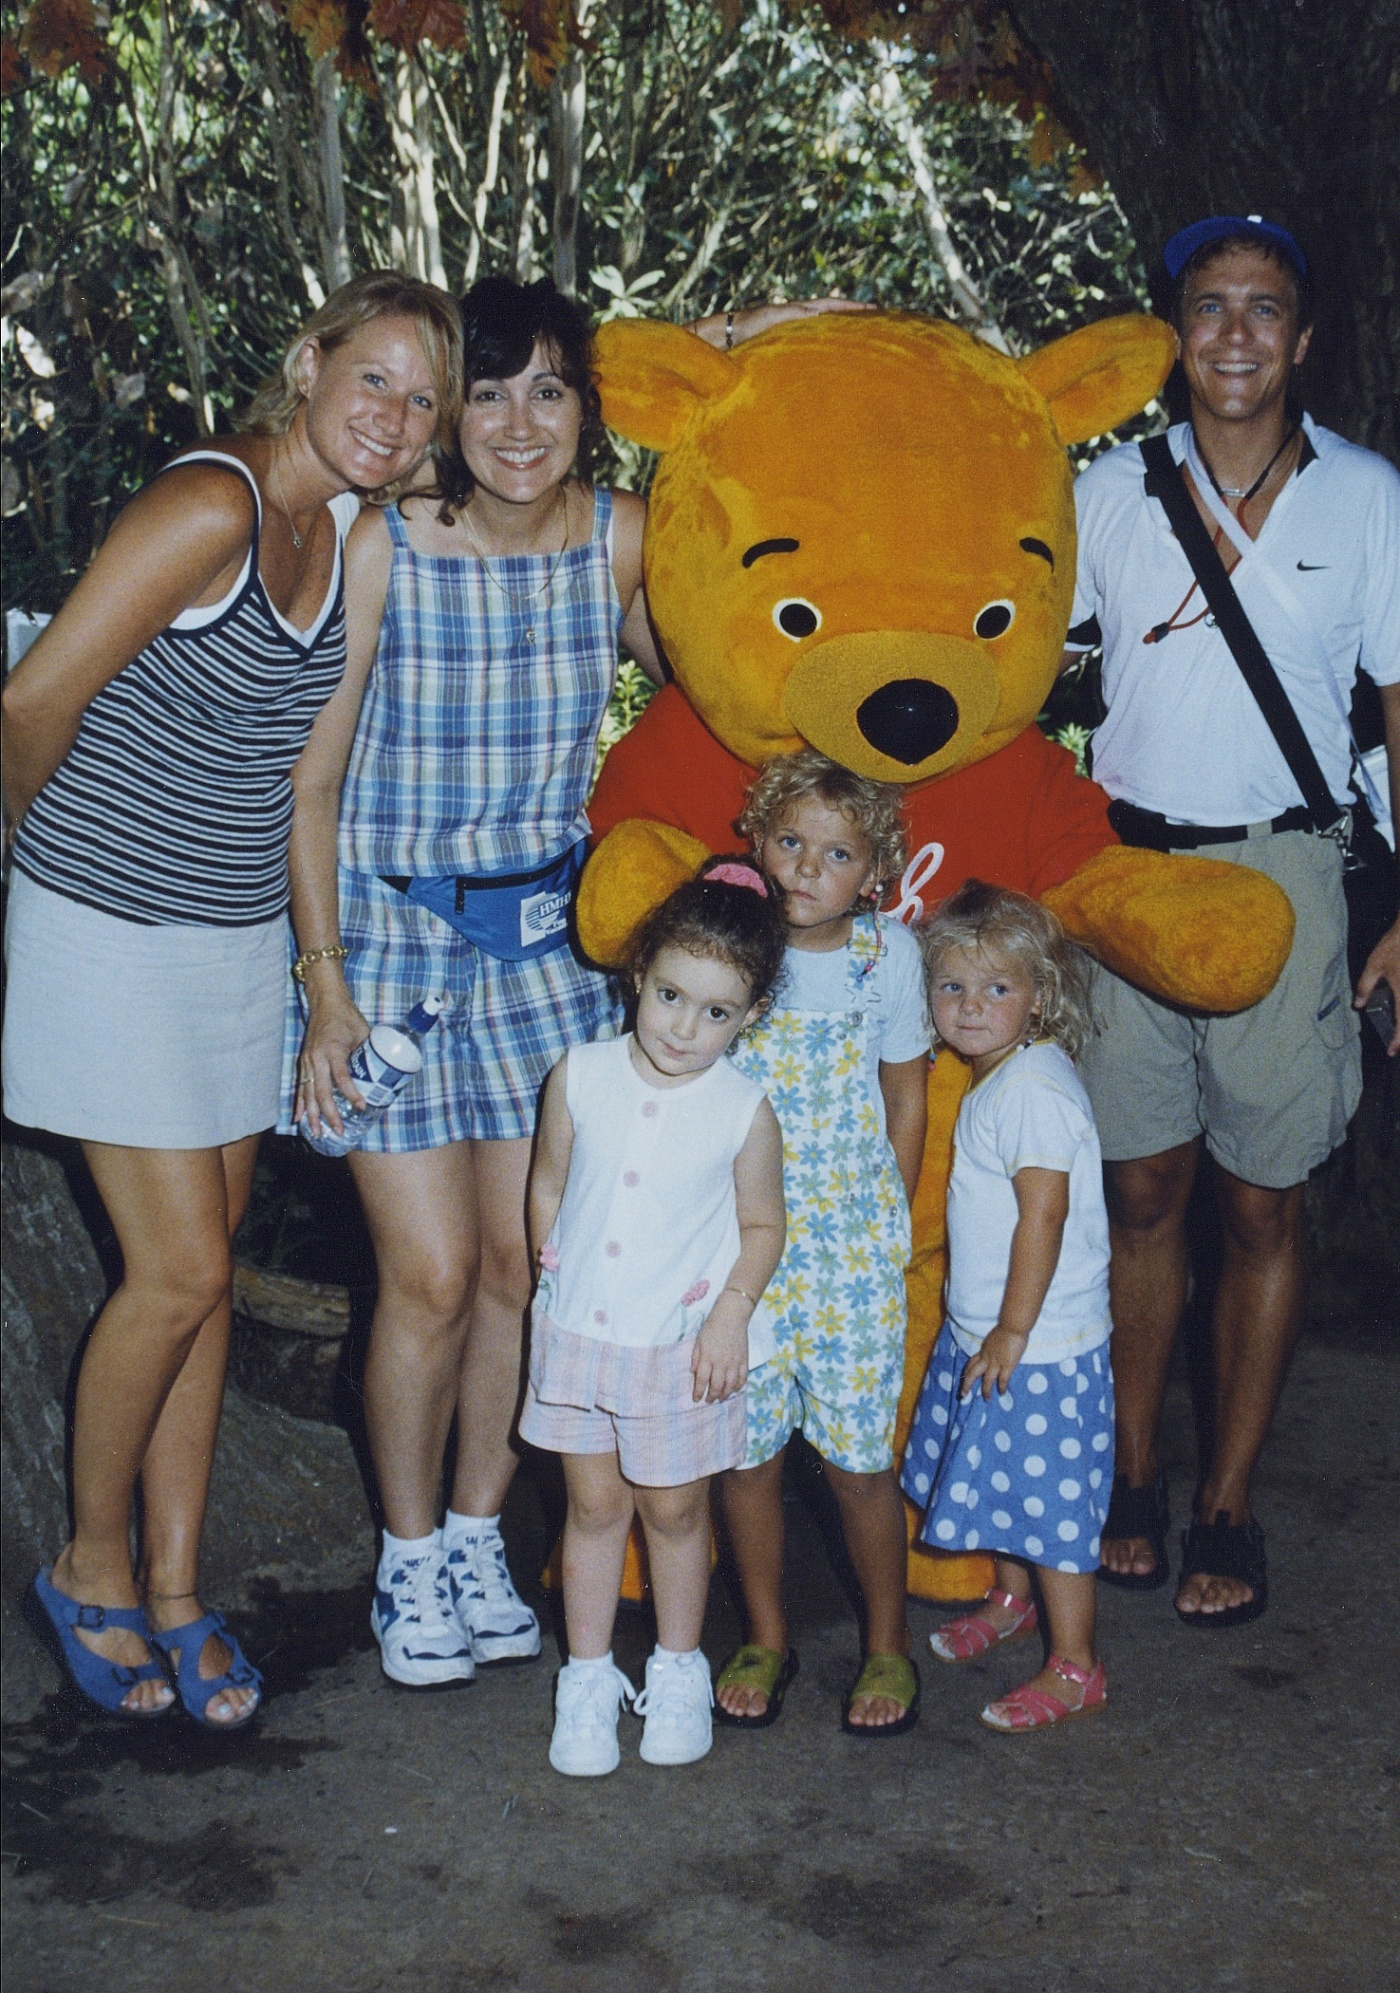 walt disney world, summer, winnie the boy, vintage,